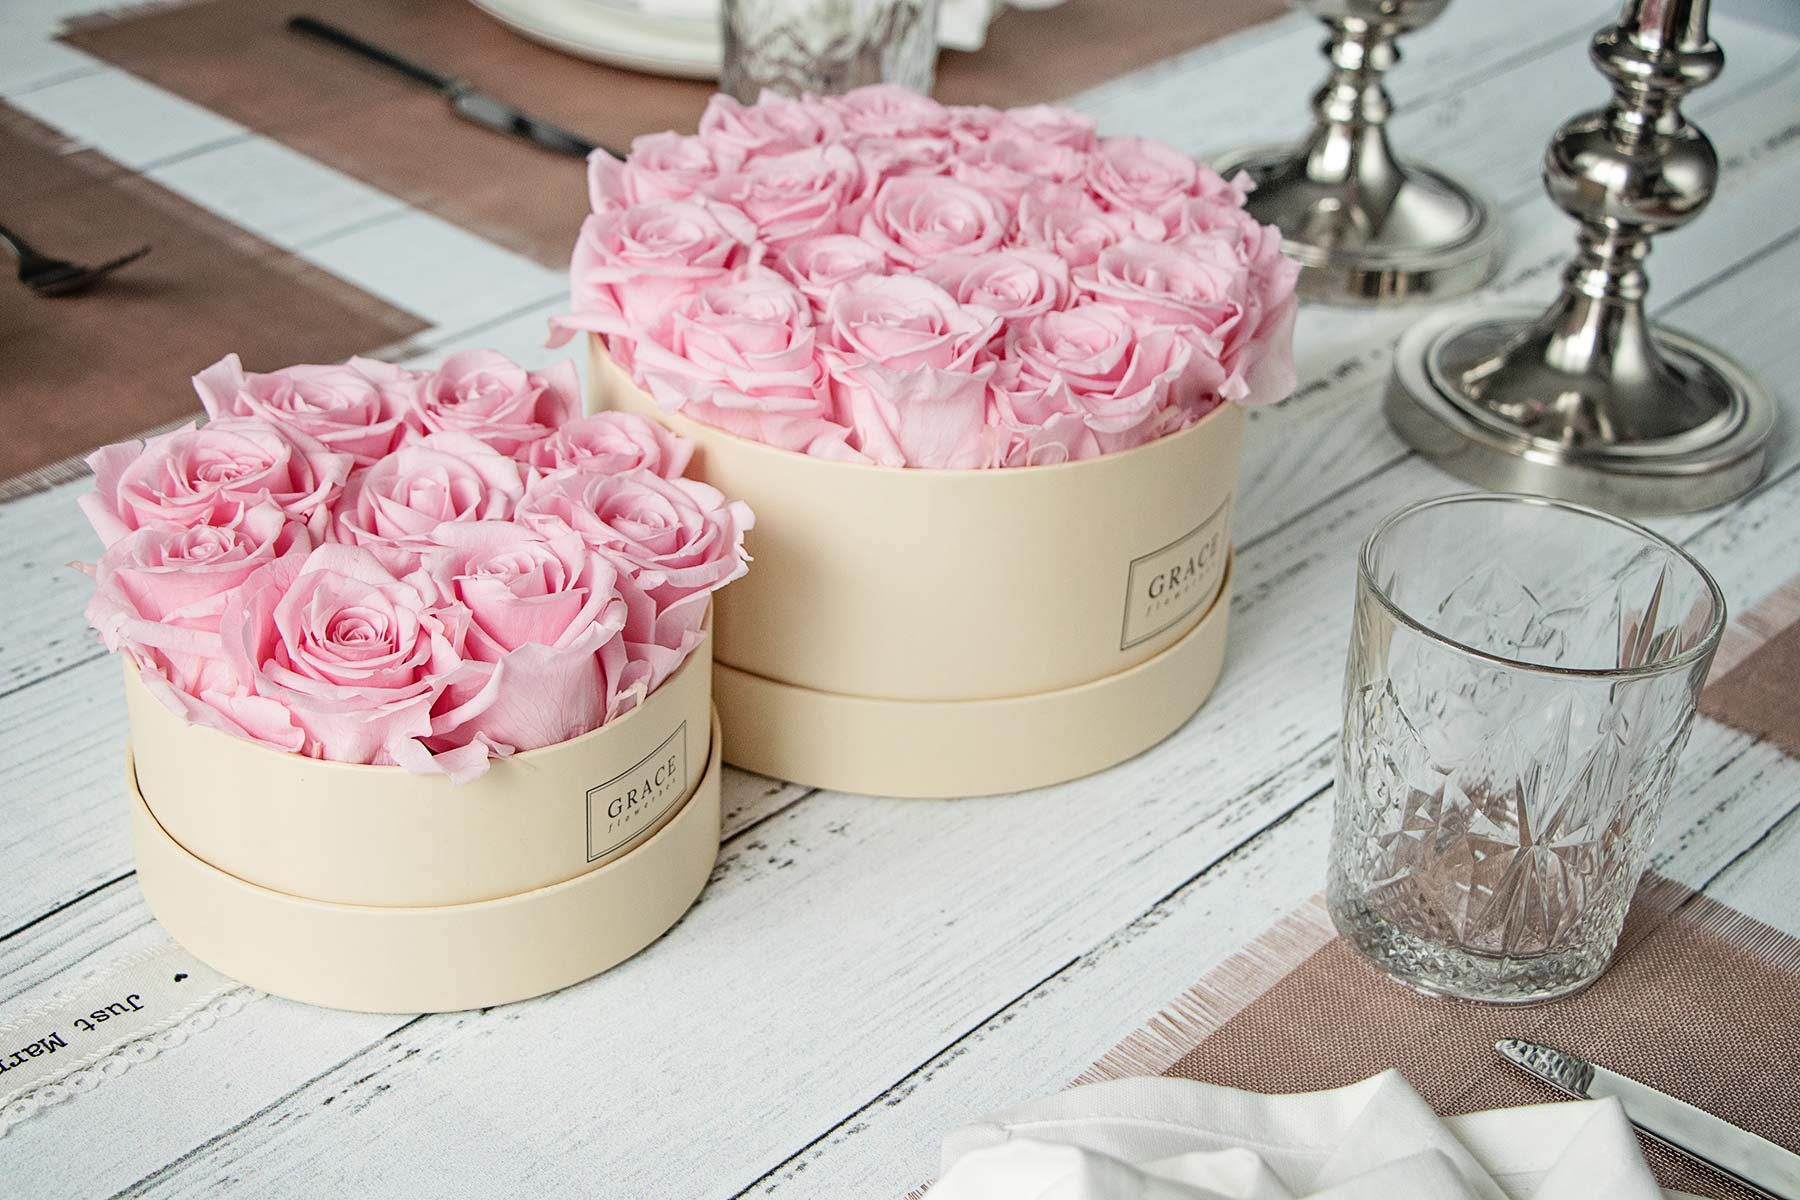 Grace Flower Box Grace Flowerbox Table Size Kollektion Für Die Tischdeko